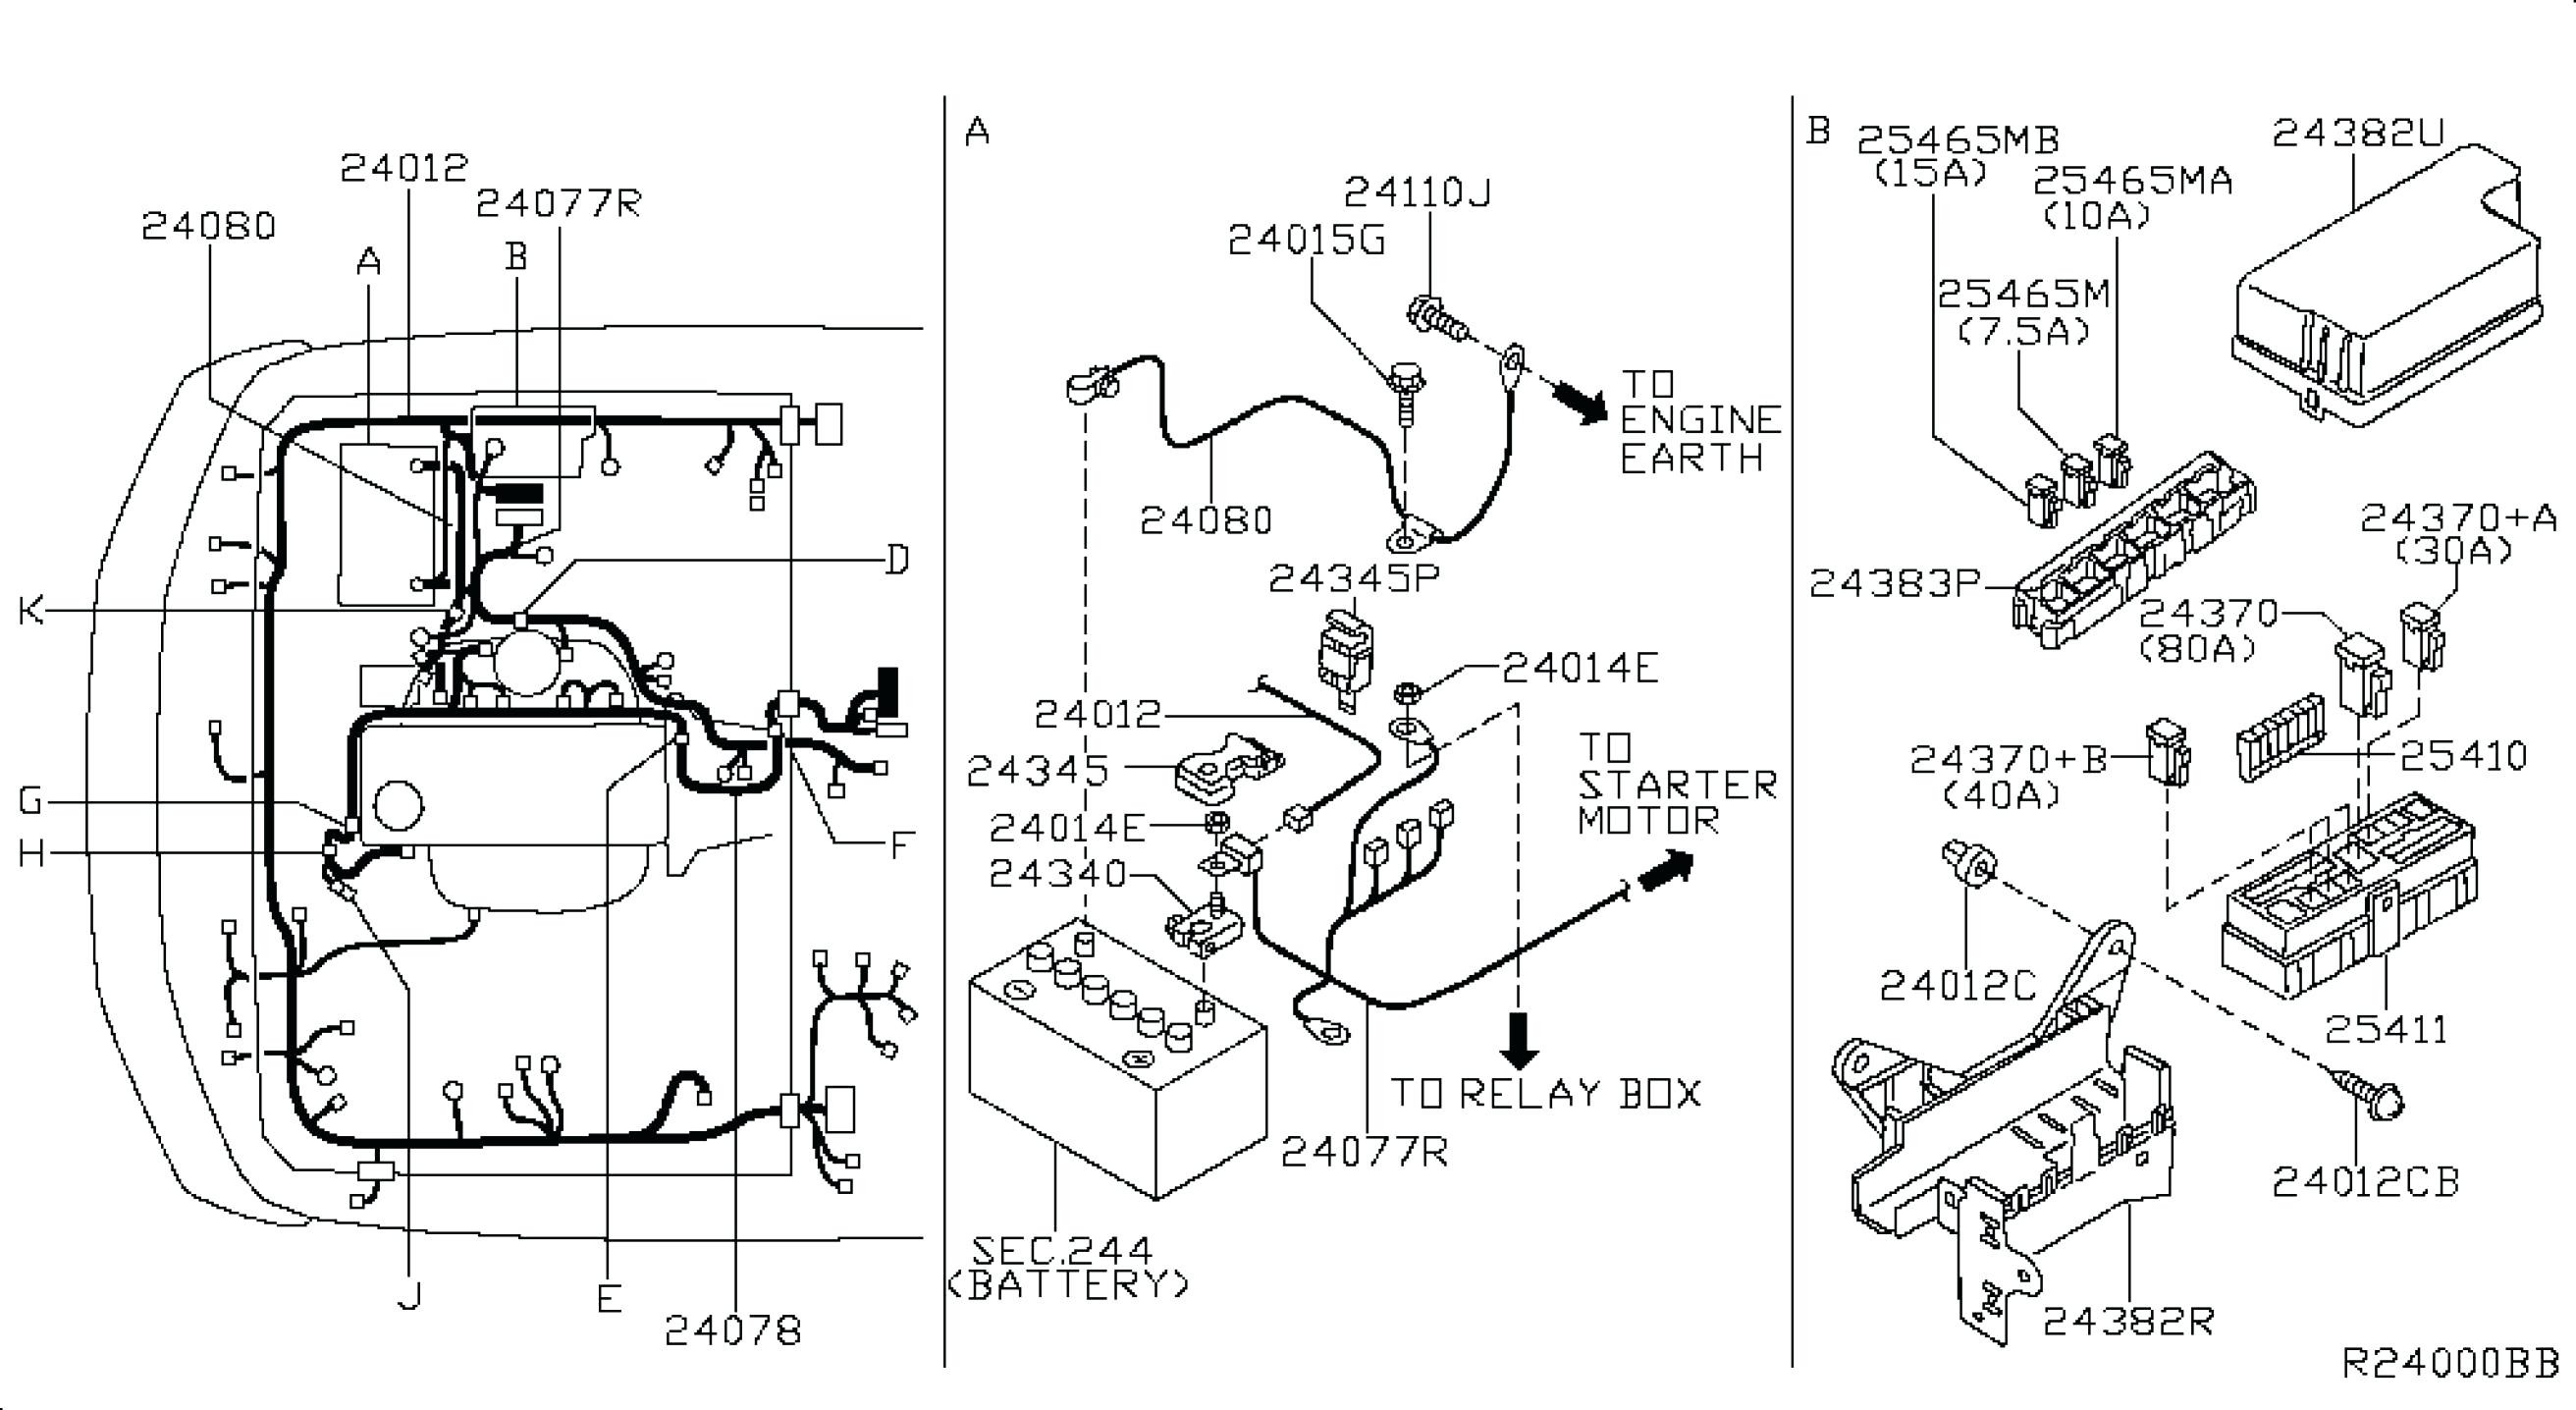 Infiniti M35 Fuse Box Diagram Wiring Library In 2004 Fx35 Diagrams U2022 G35 Layout M35x